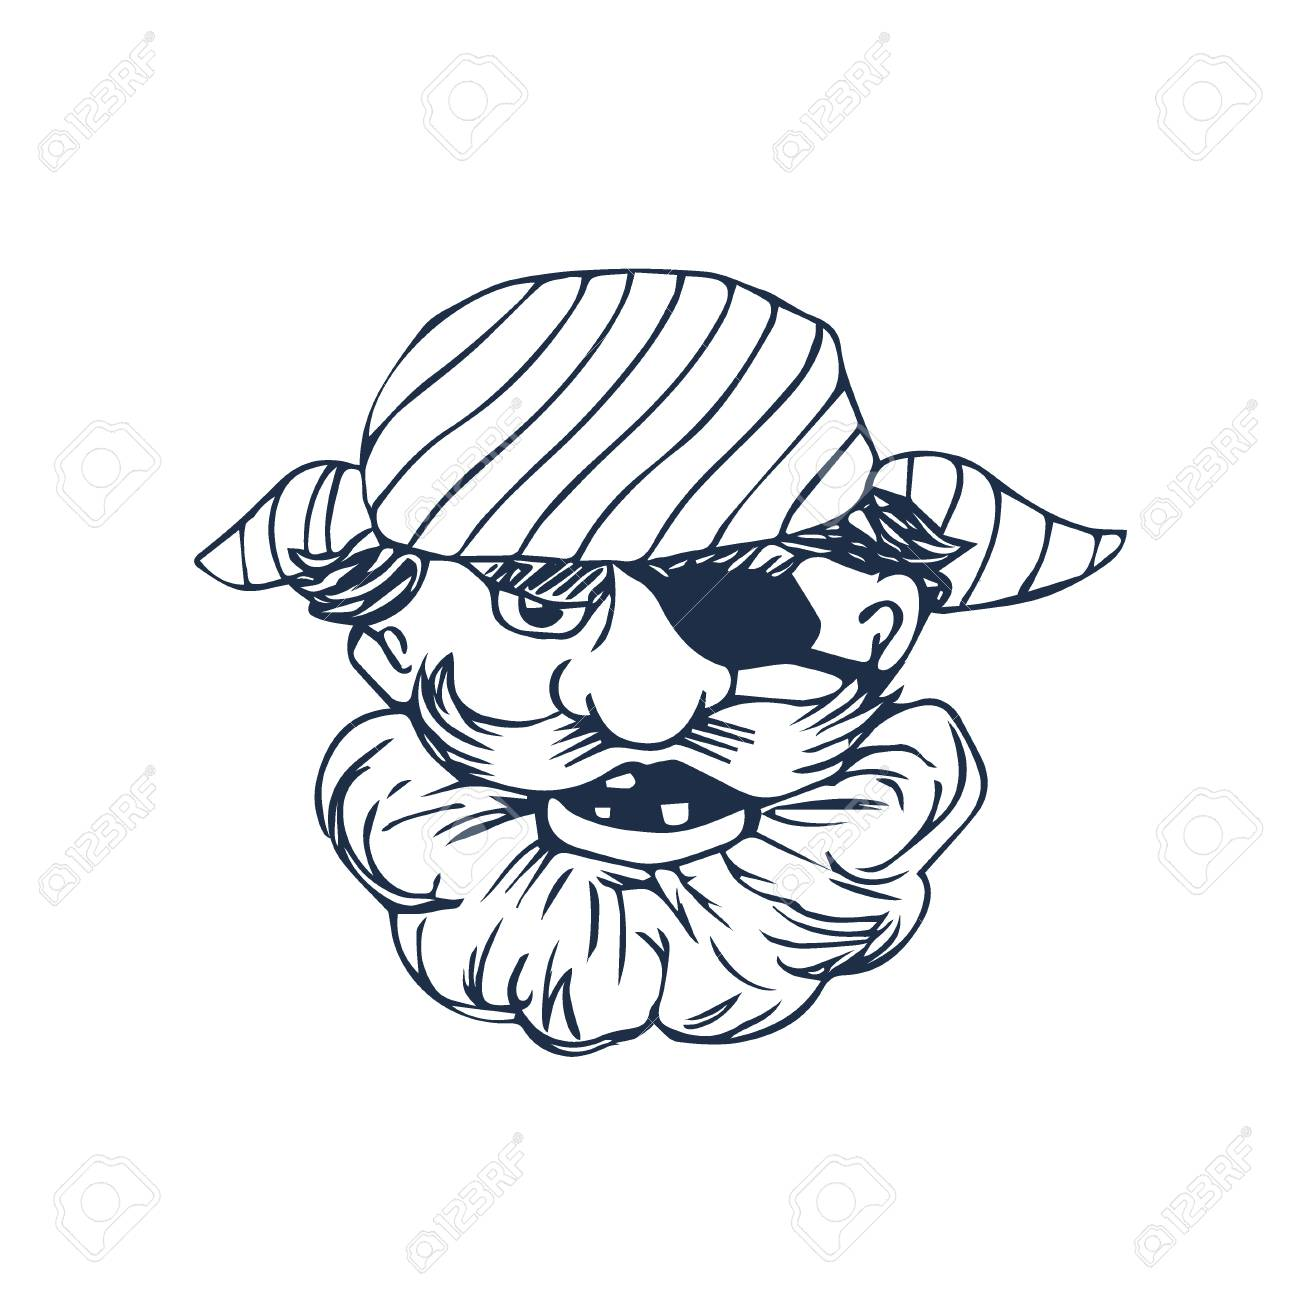 The best free Bearded drawing images  Download from 184 free